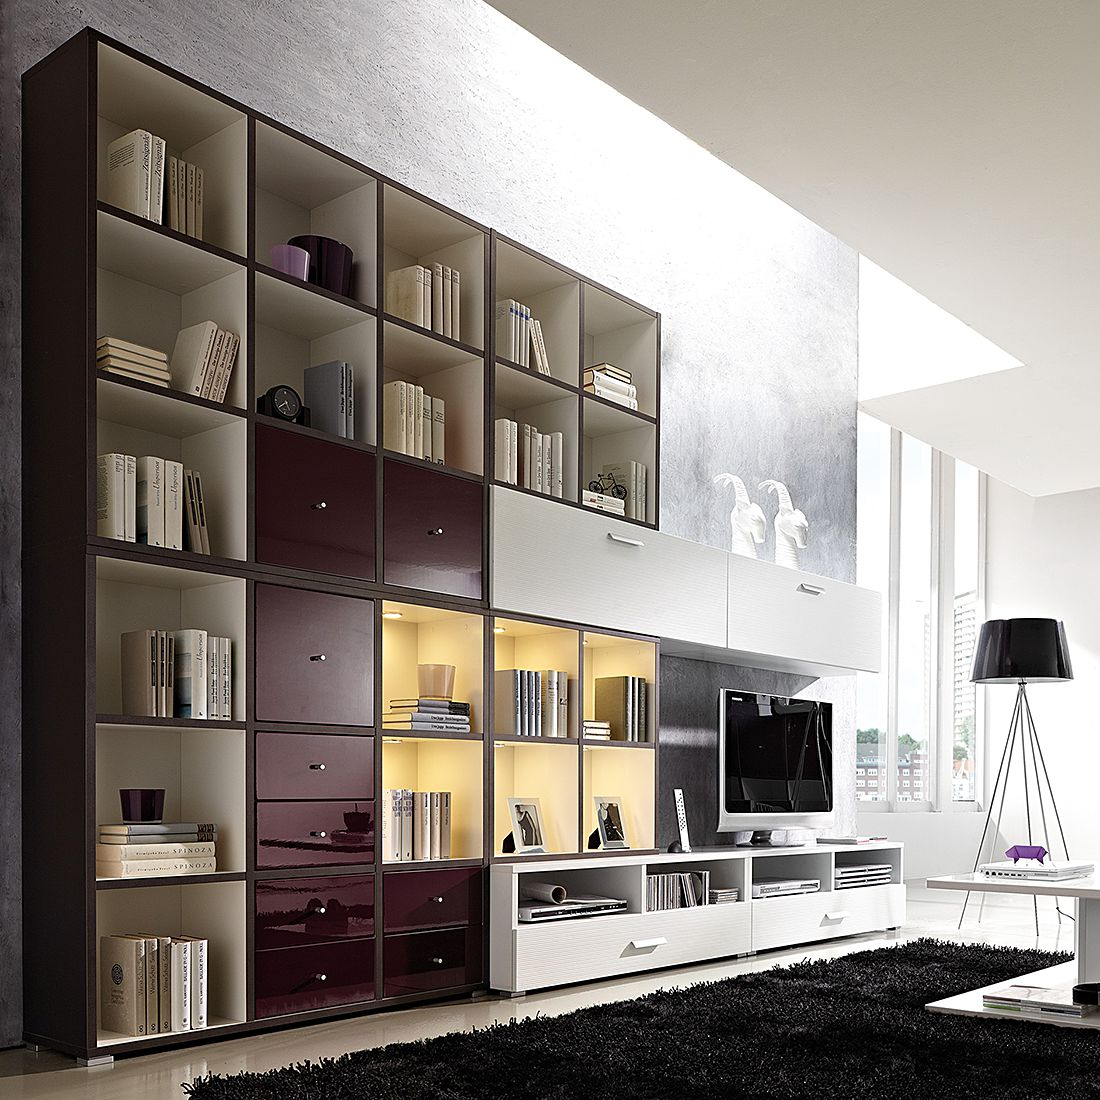 wohnwand cube inklusive beleuchtung wei brombeer anthrazit wohnwand cube inkl beleuchtung. Black Bedroom Furniture Sets. Home Design Ideas